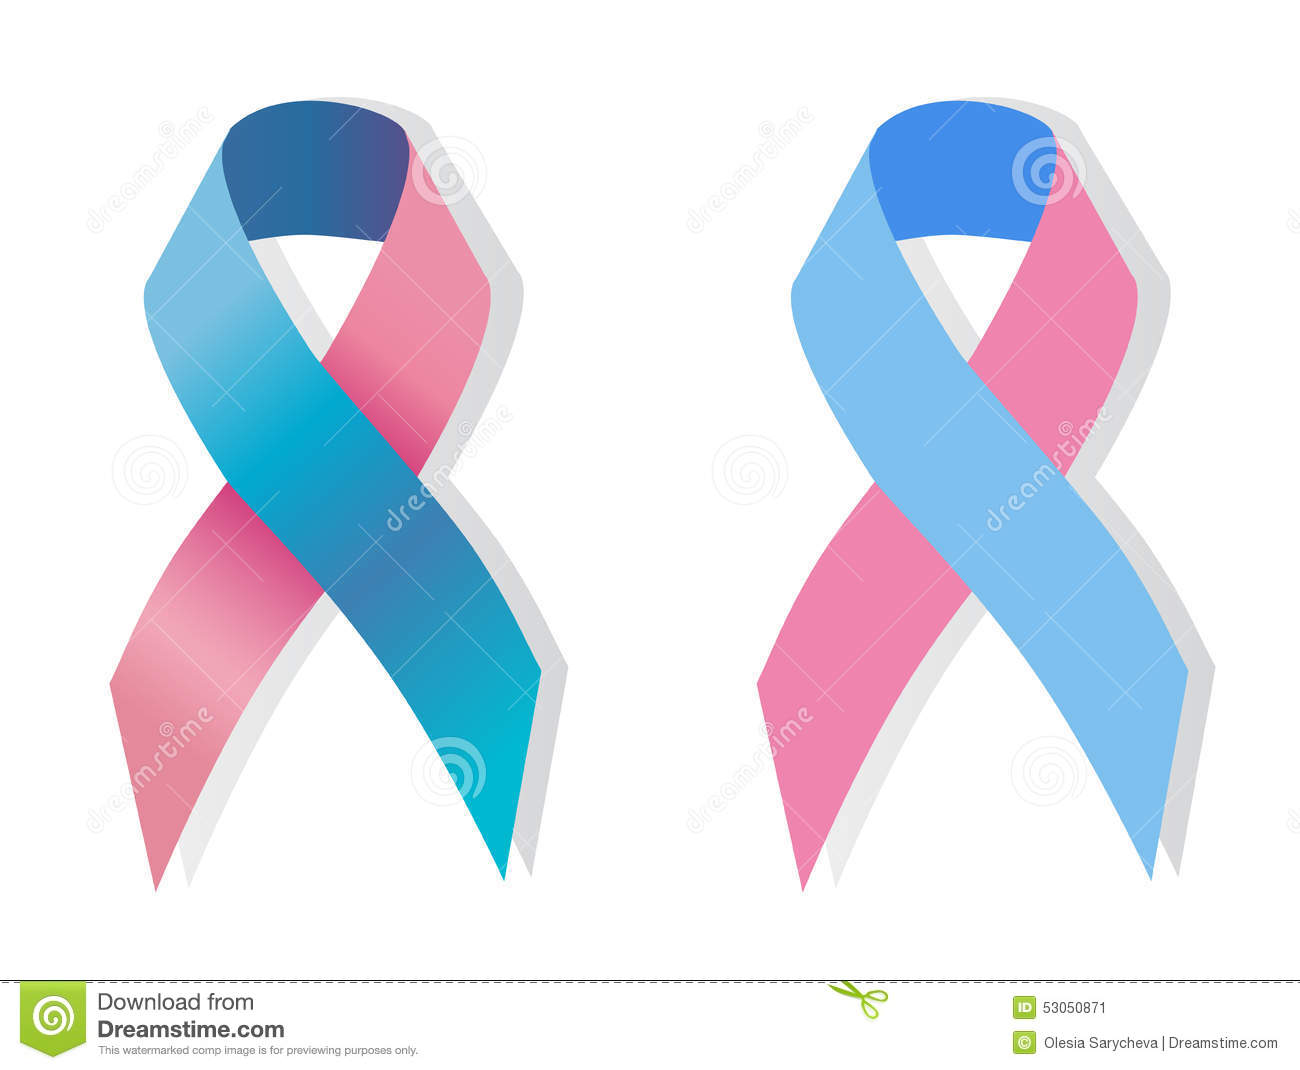 ... breast cancer awareness, inflammatory breast cancer awareness